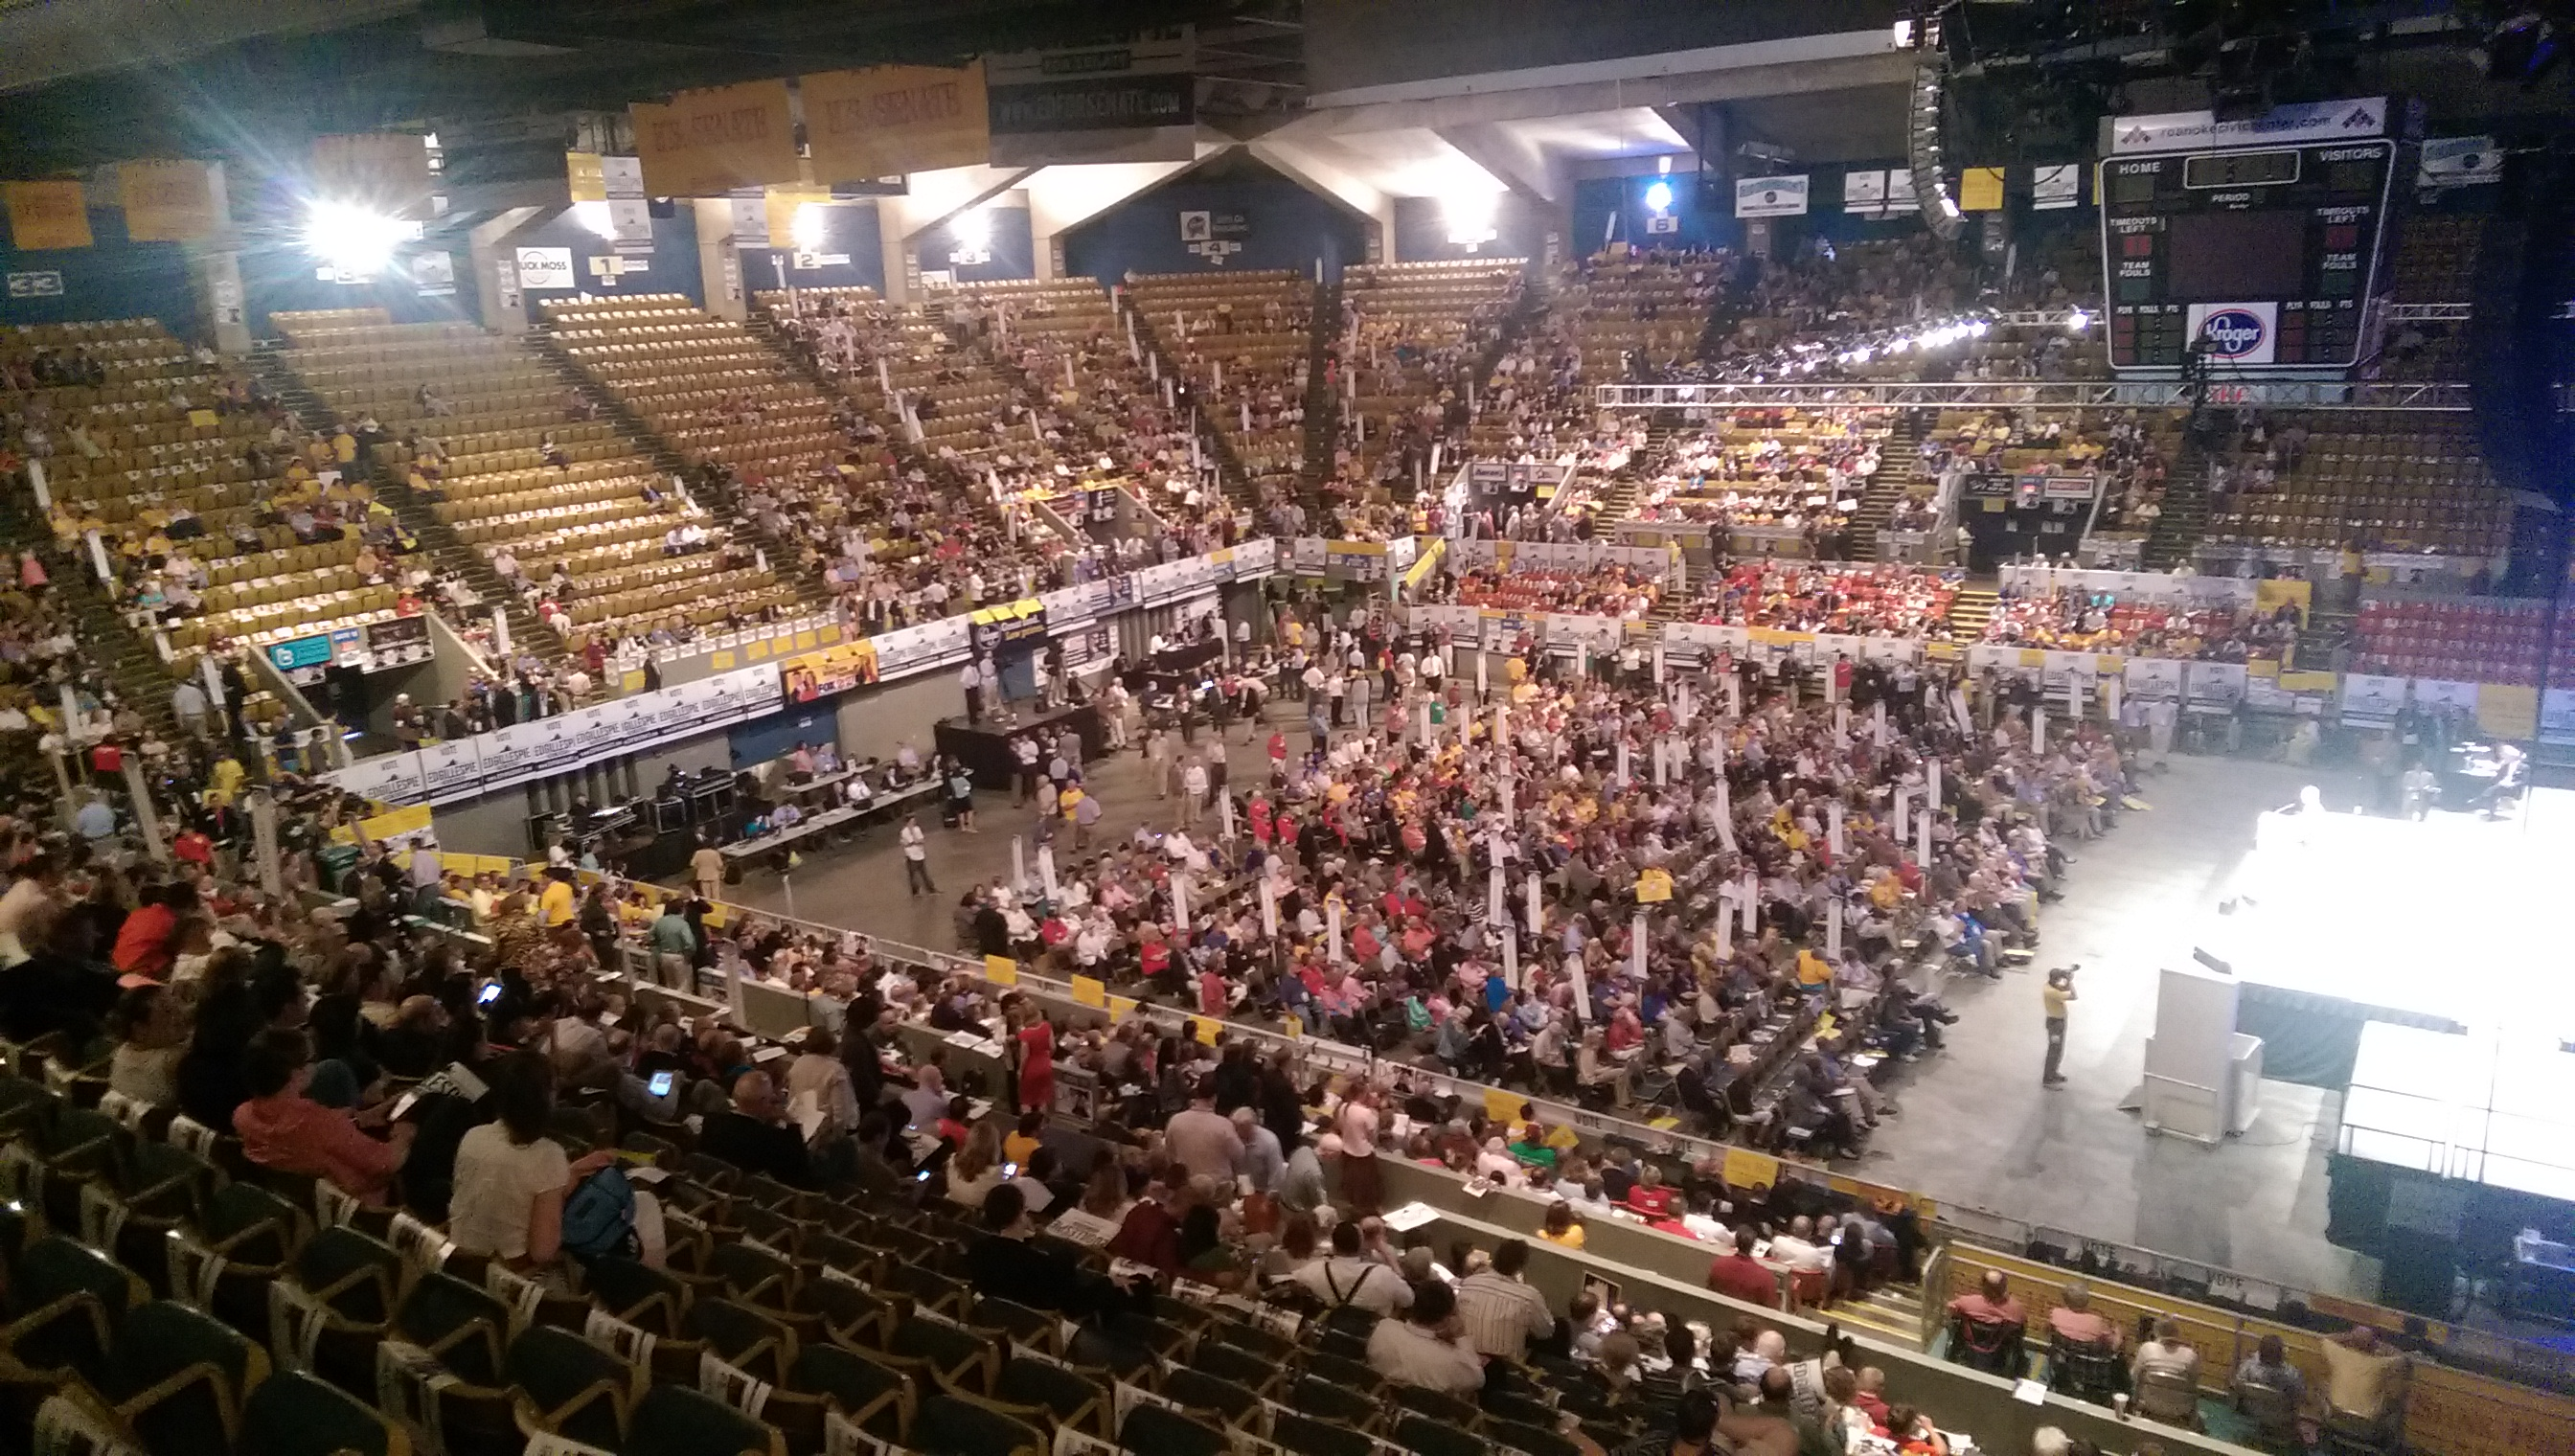 Scene from the 2014 Convention in Roanoke.